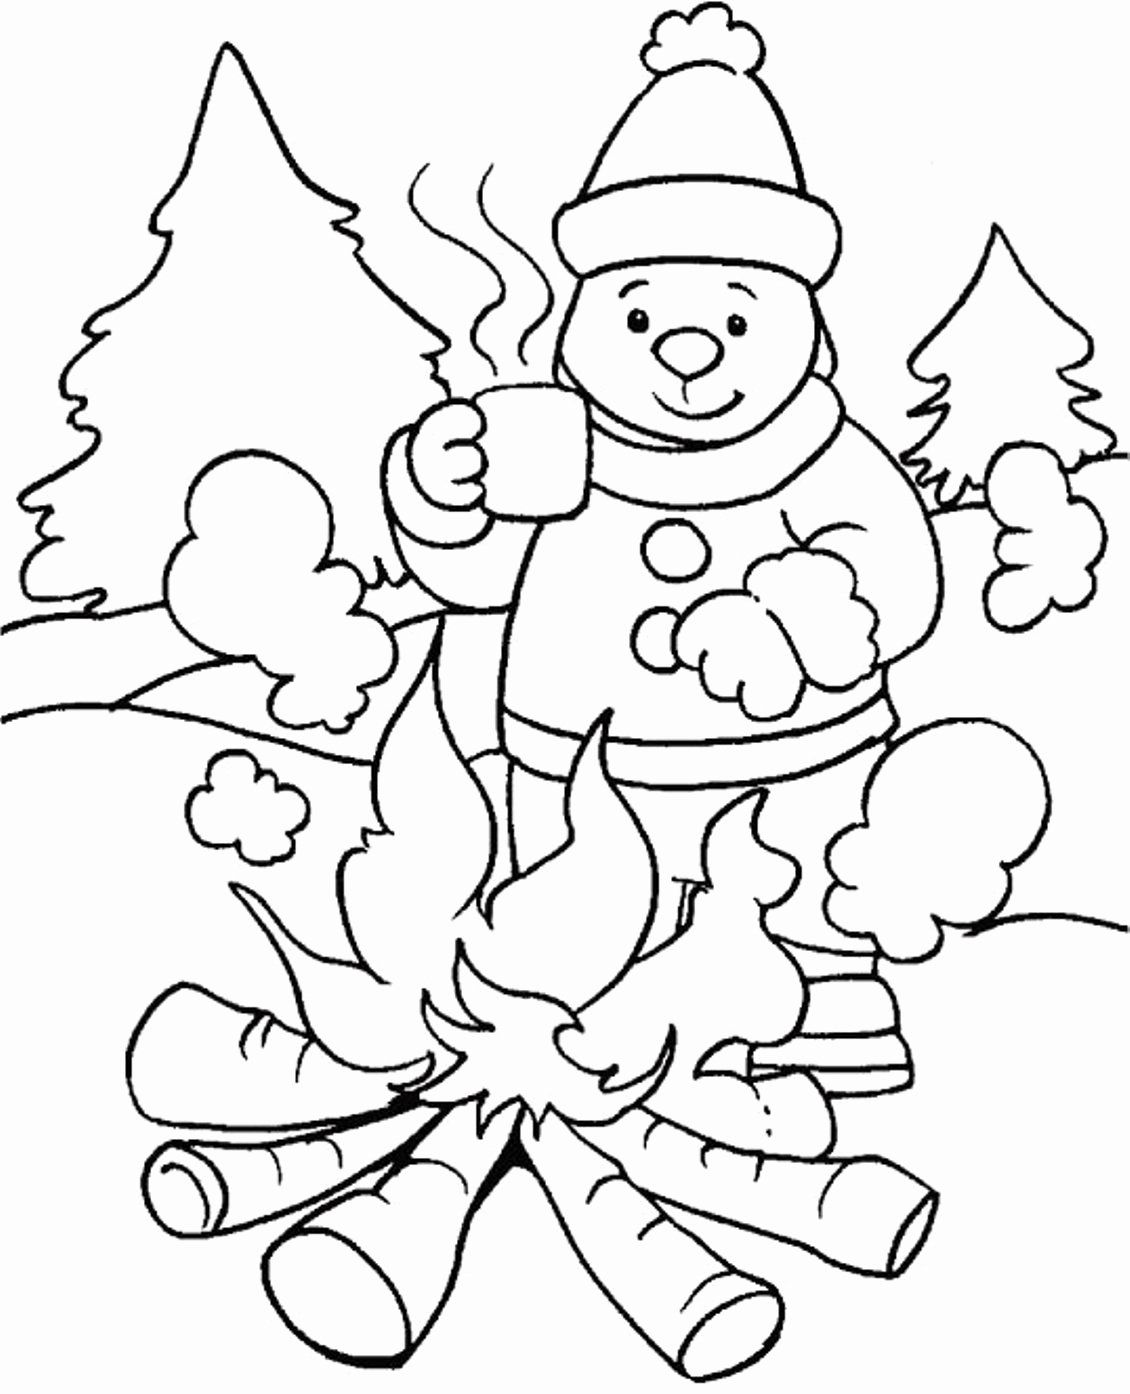 Winter Coloring Sheets Free Printable Unique Free Printable Winter